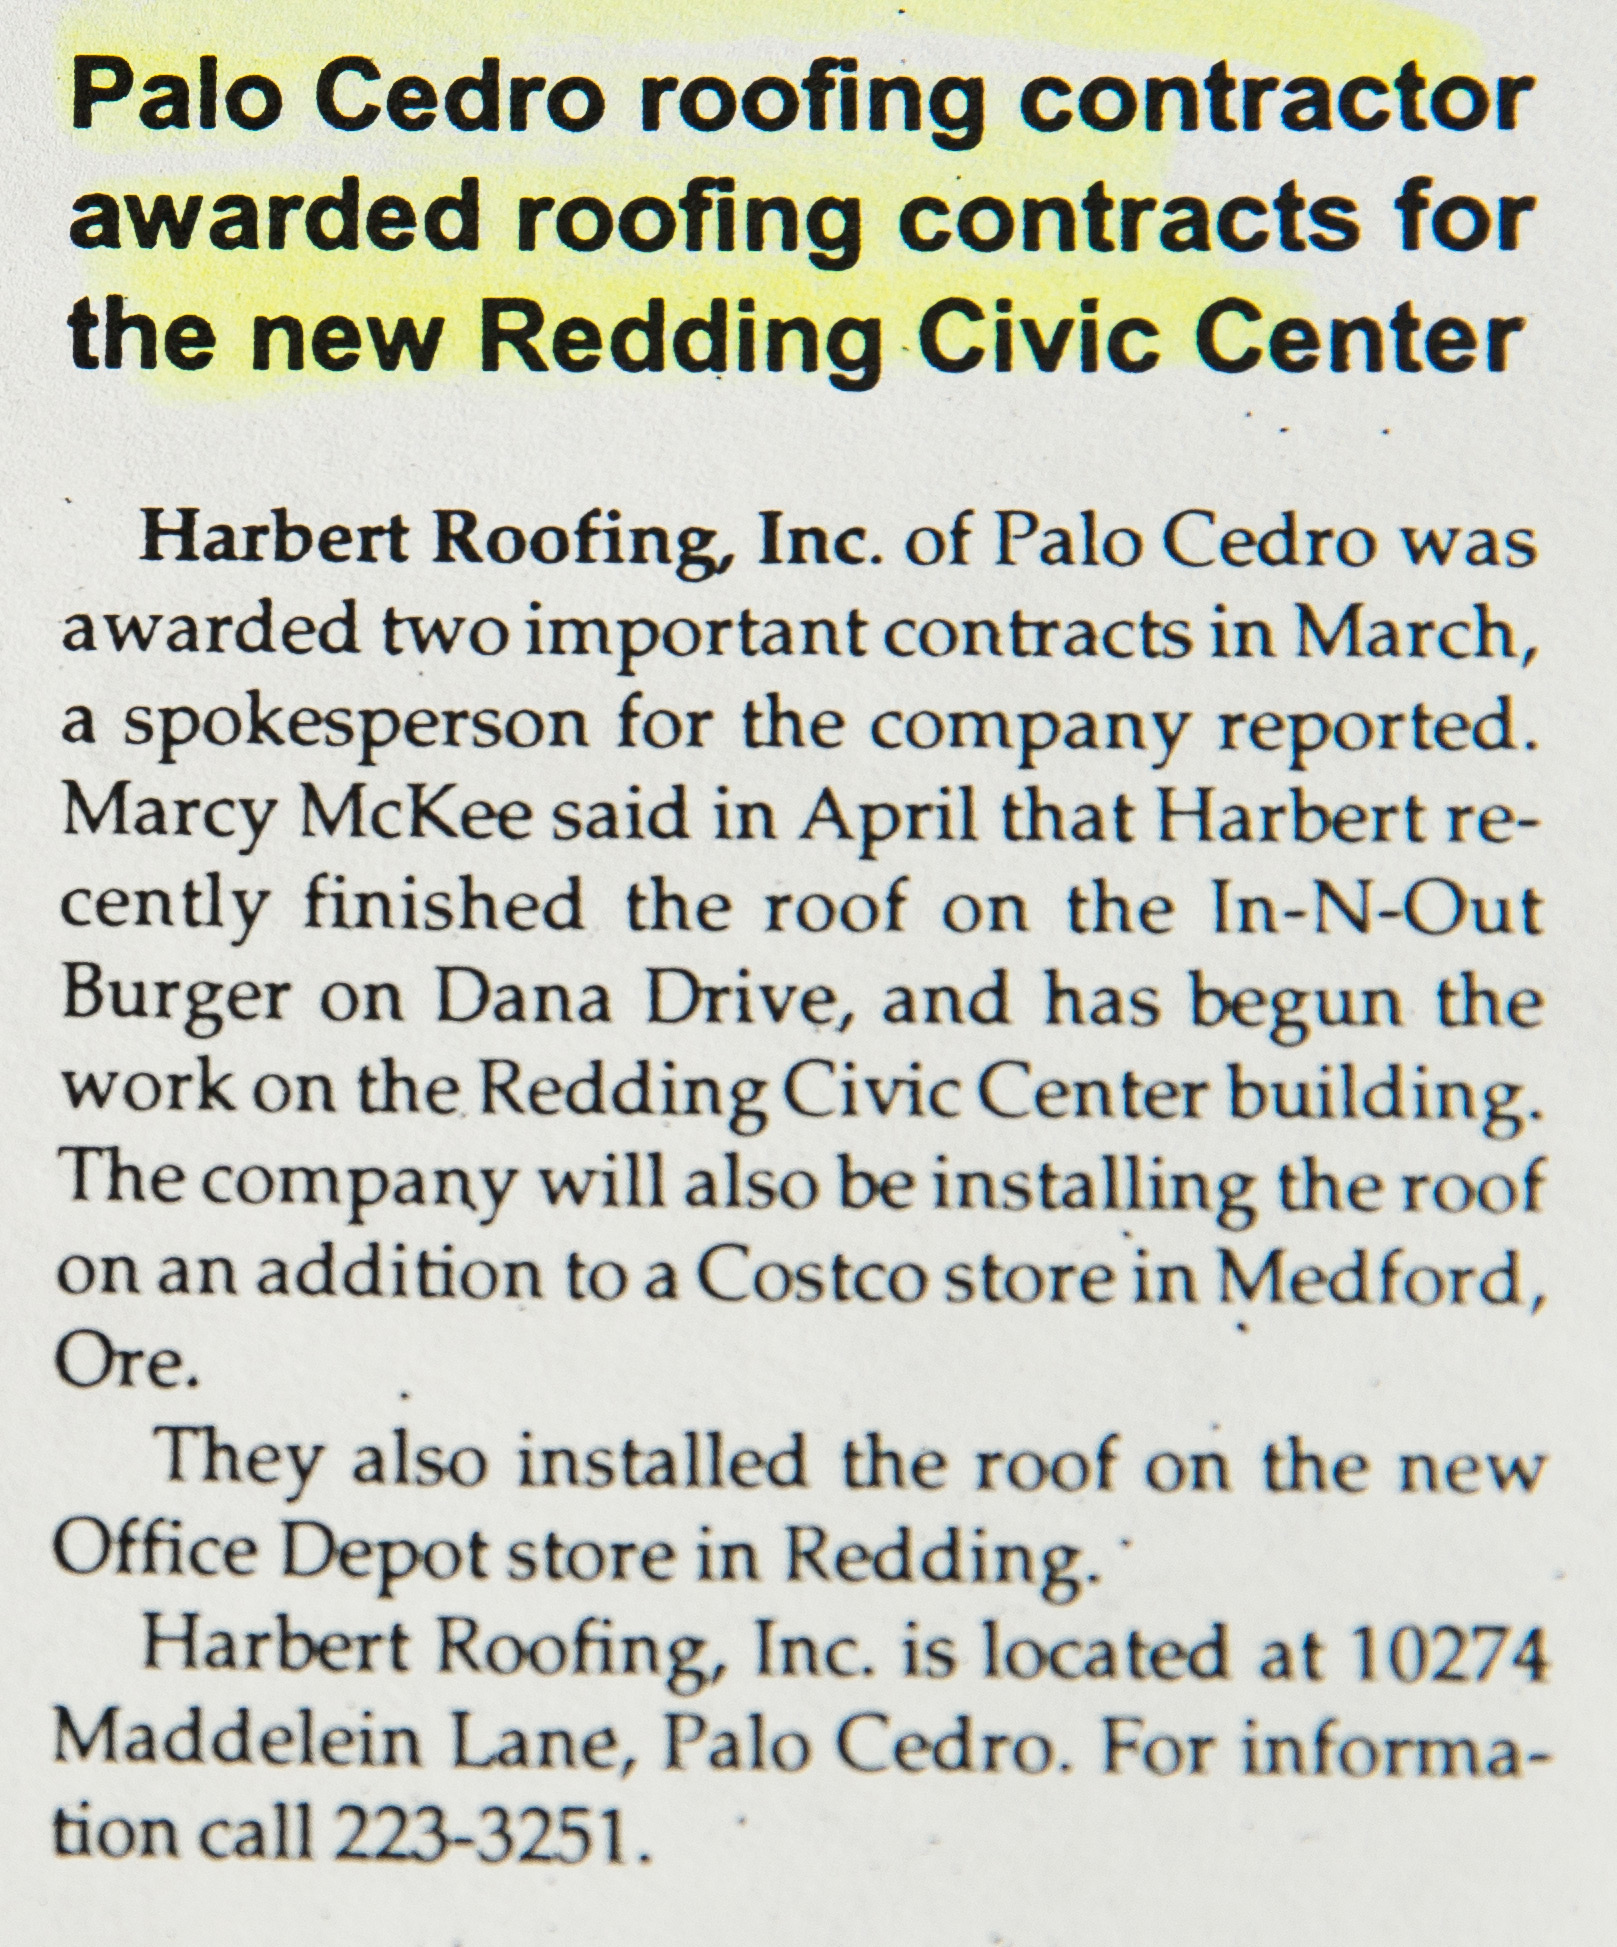 Palo Cedro roofing contractor awarded roofing contracts for the new Redding Civic Center - Harbert Roofing, Inc. of Palo Cedro was awarded two important contracts in March, a spokesperson for the company reported. Marcy McKee said in April that Harbert recently finished the roof on the In-N-Out Burger on Dana Drive, and has begun the work on the Redding Civic Center building. The company will also be installing the roof on an addition to a Costco store in Medford, Ore. They also installed the roof on the new Office Depot store in Redding. Harbert Roofing, Inc. is located at 10274 Maddelein Lane, Palo Cedro. For information call 223-3251. Published May 1999